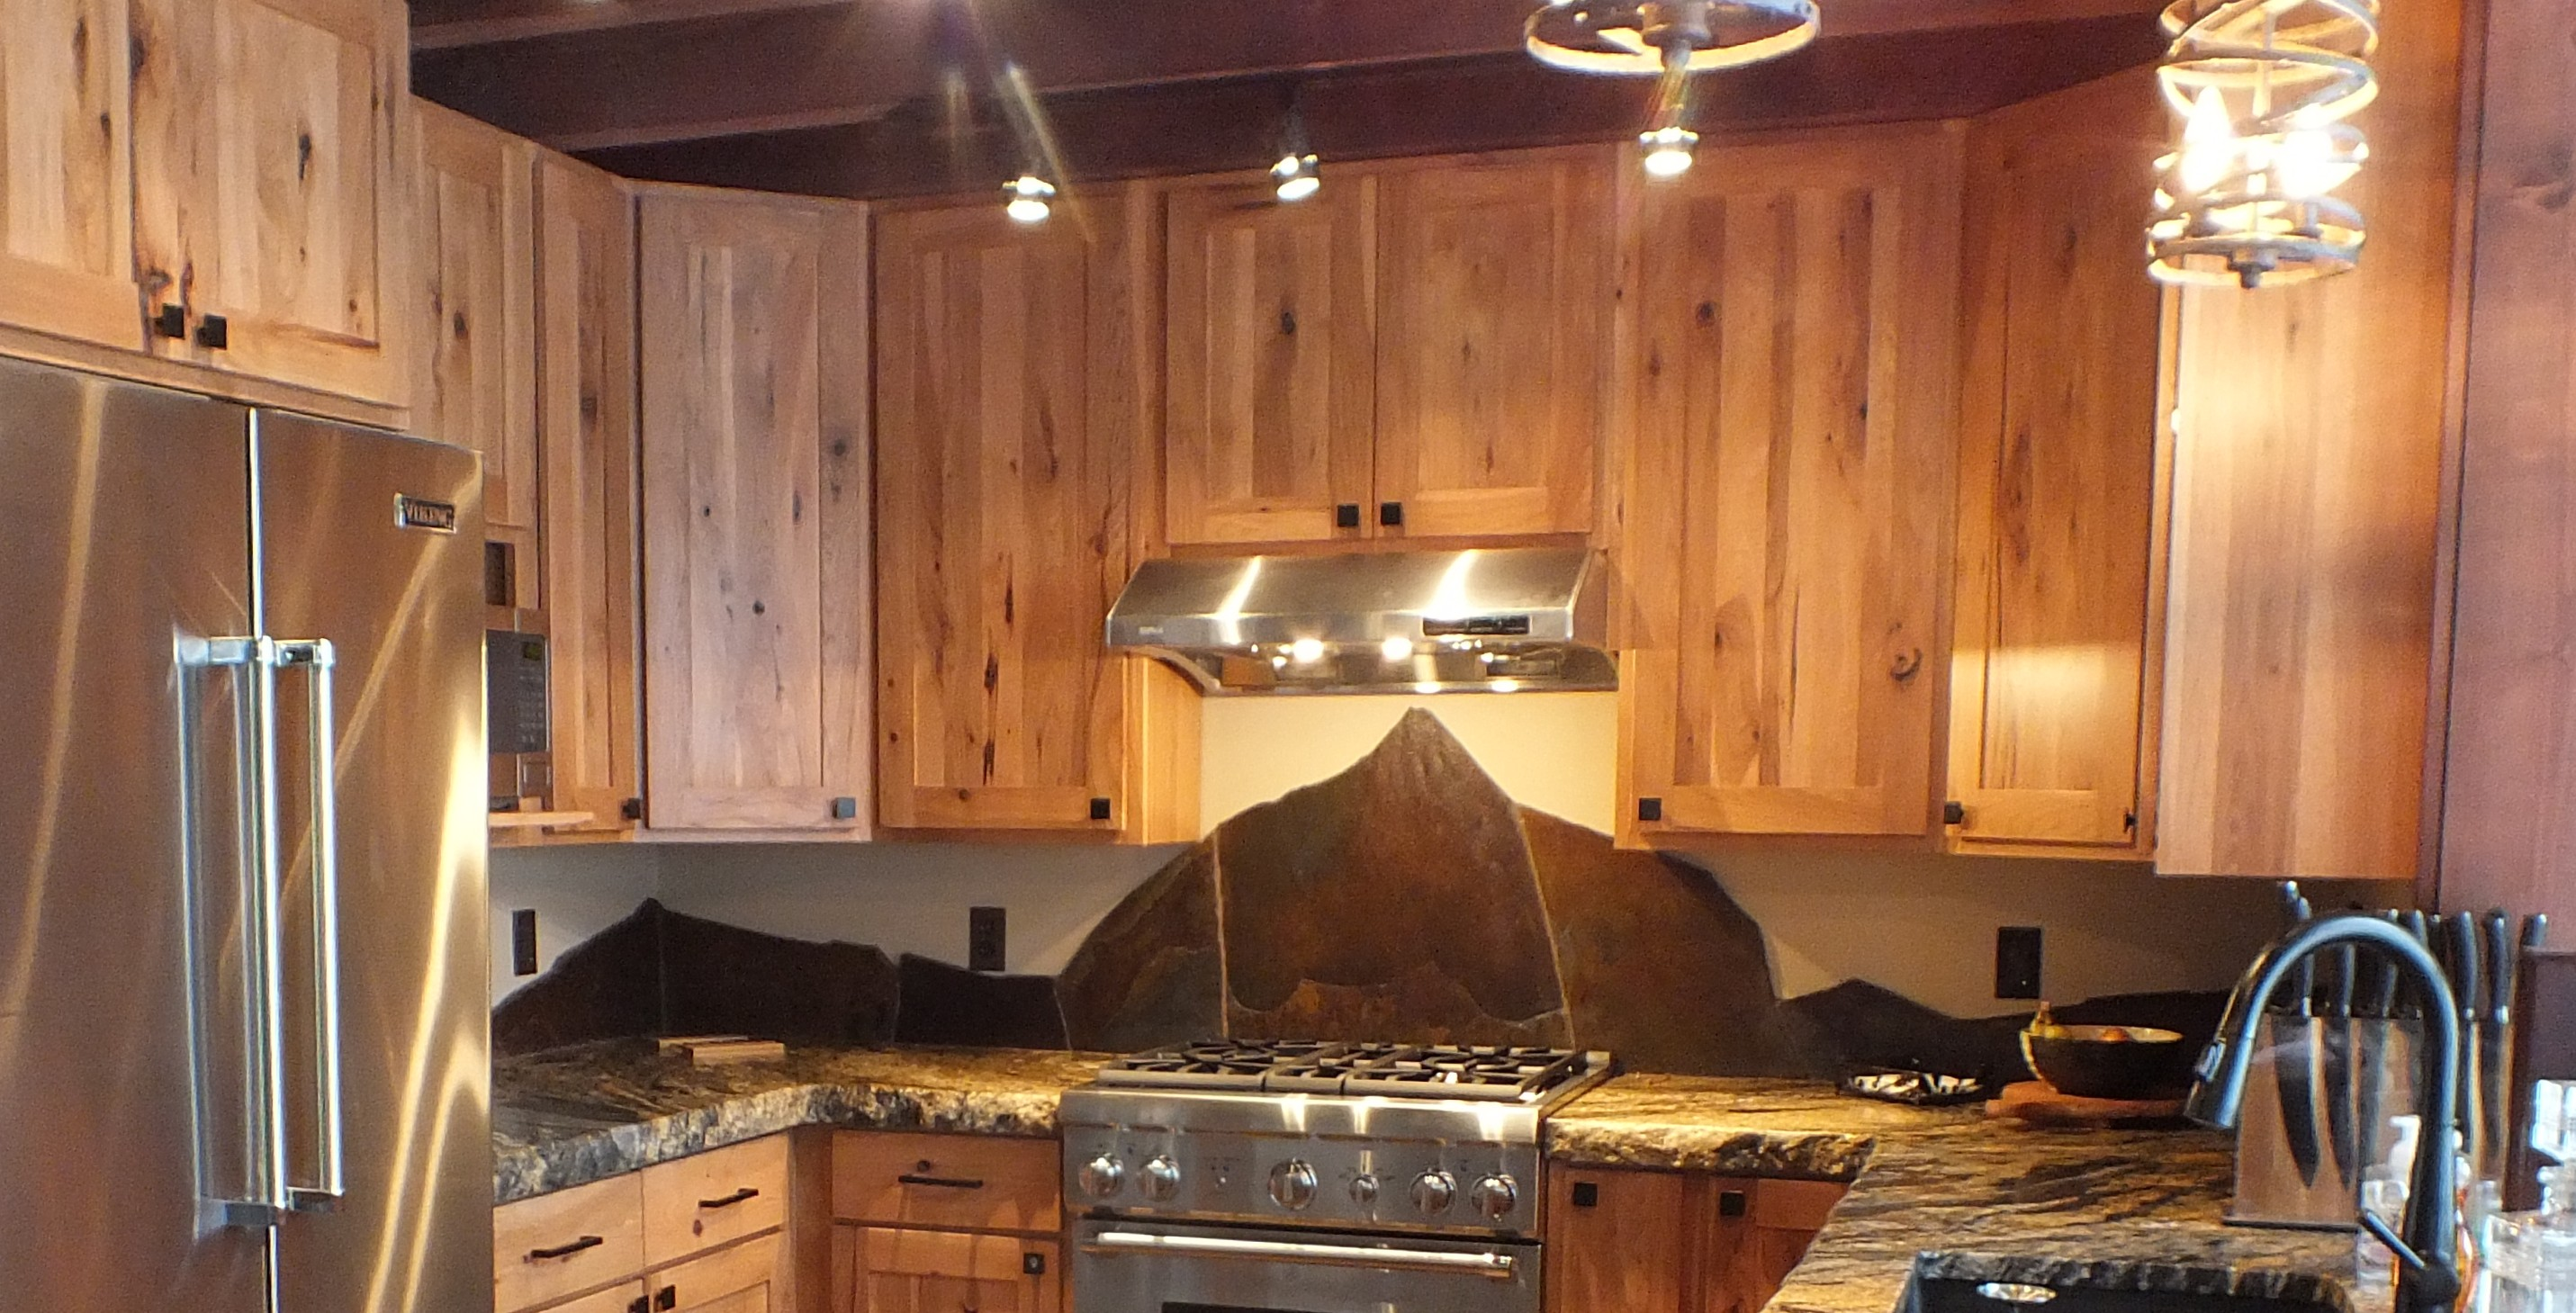 before island countertops with your white adp purchasing kitchen countertop surfaces should listings things dsc custom know granite